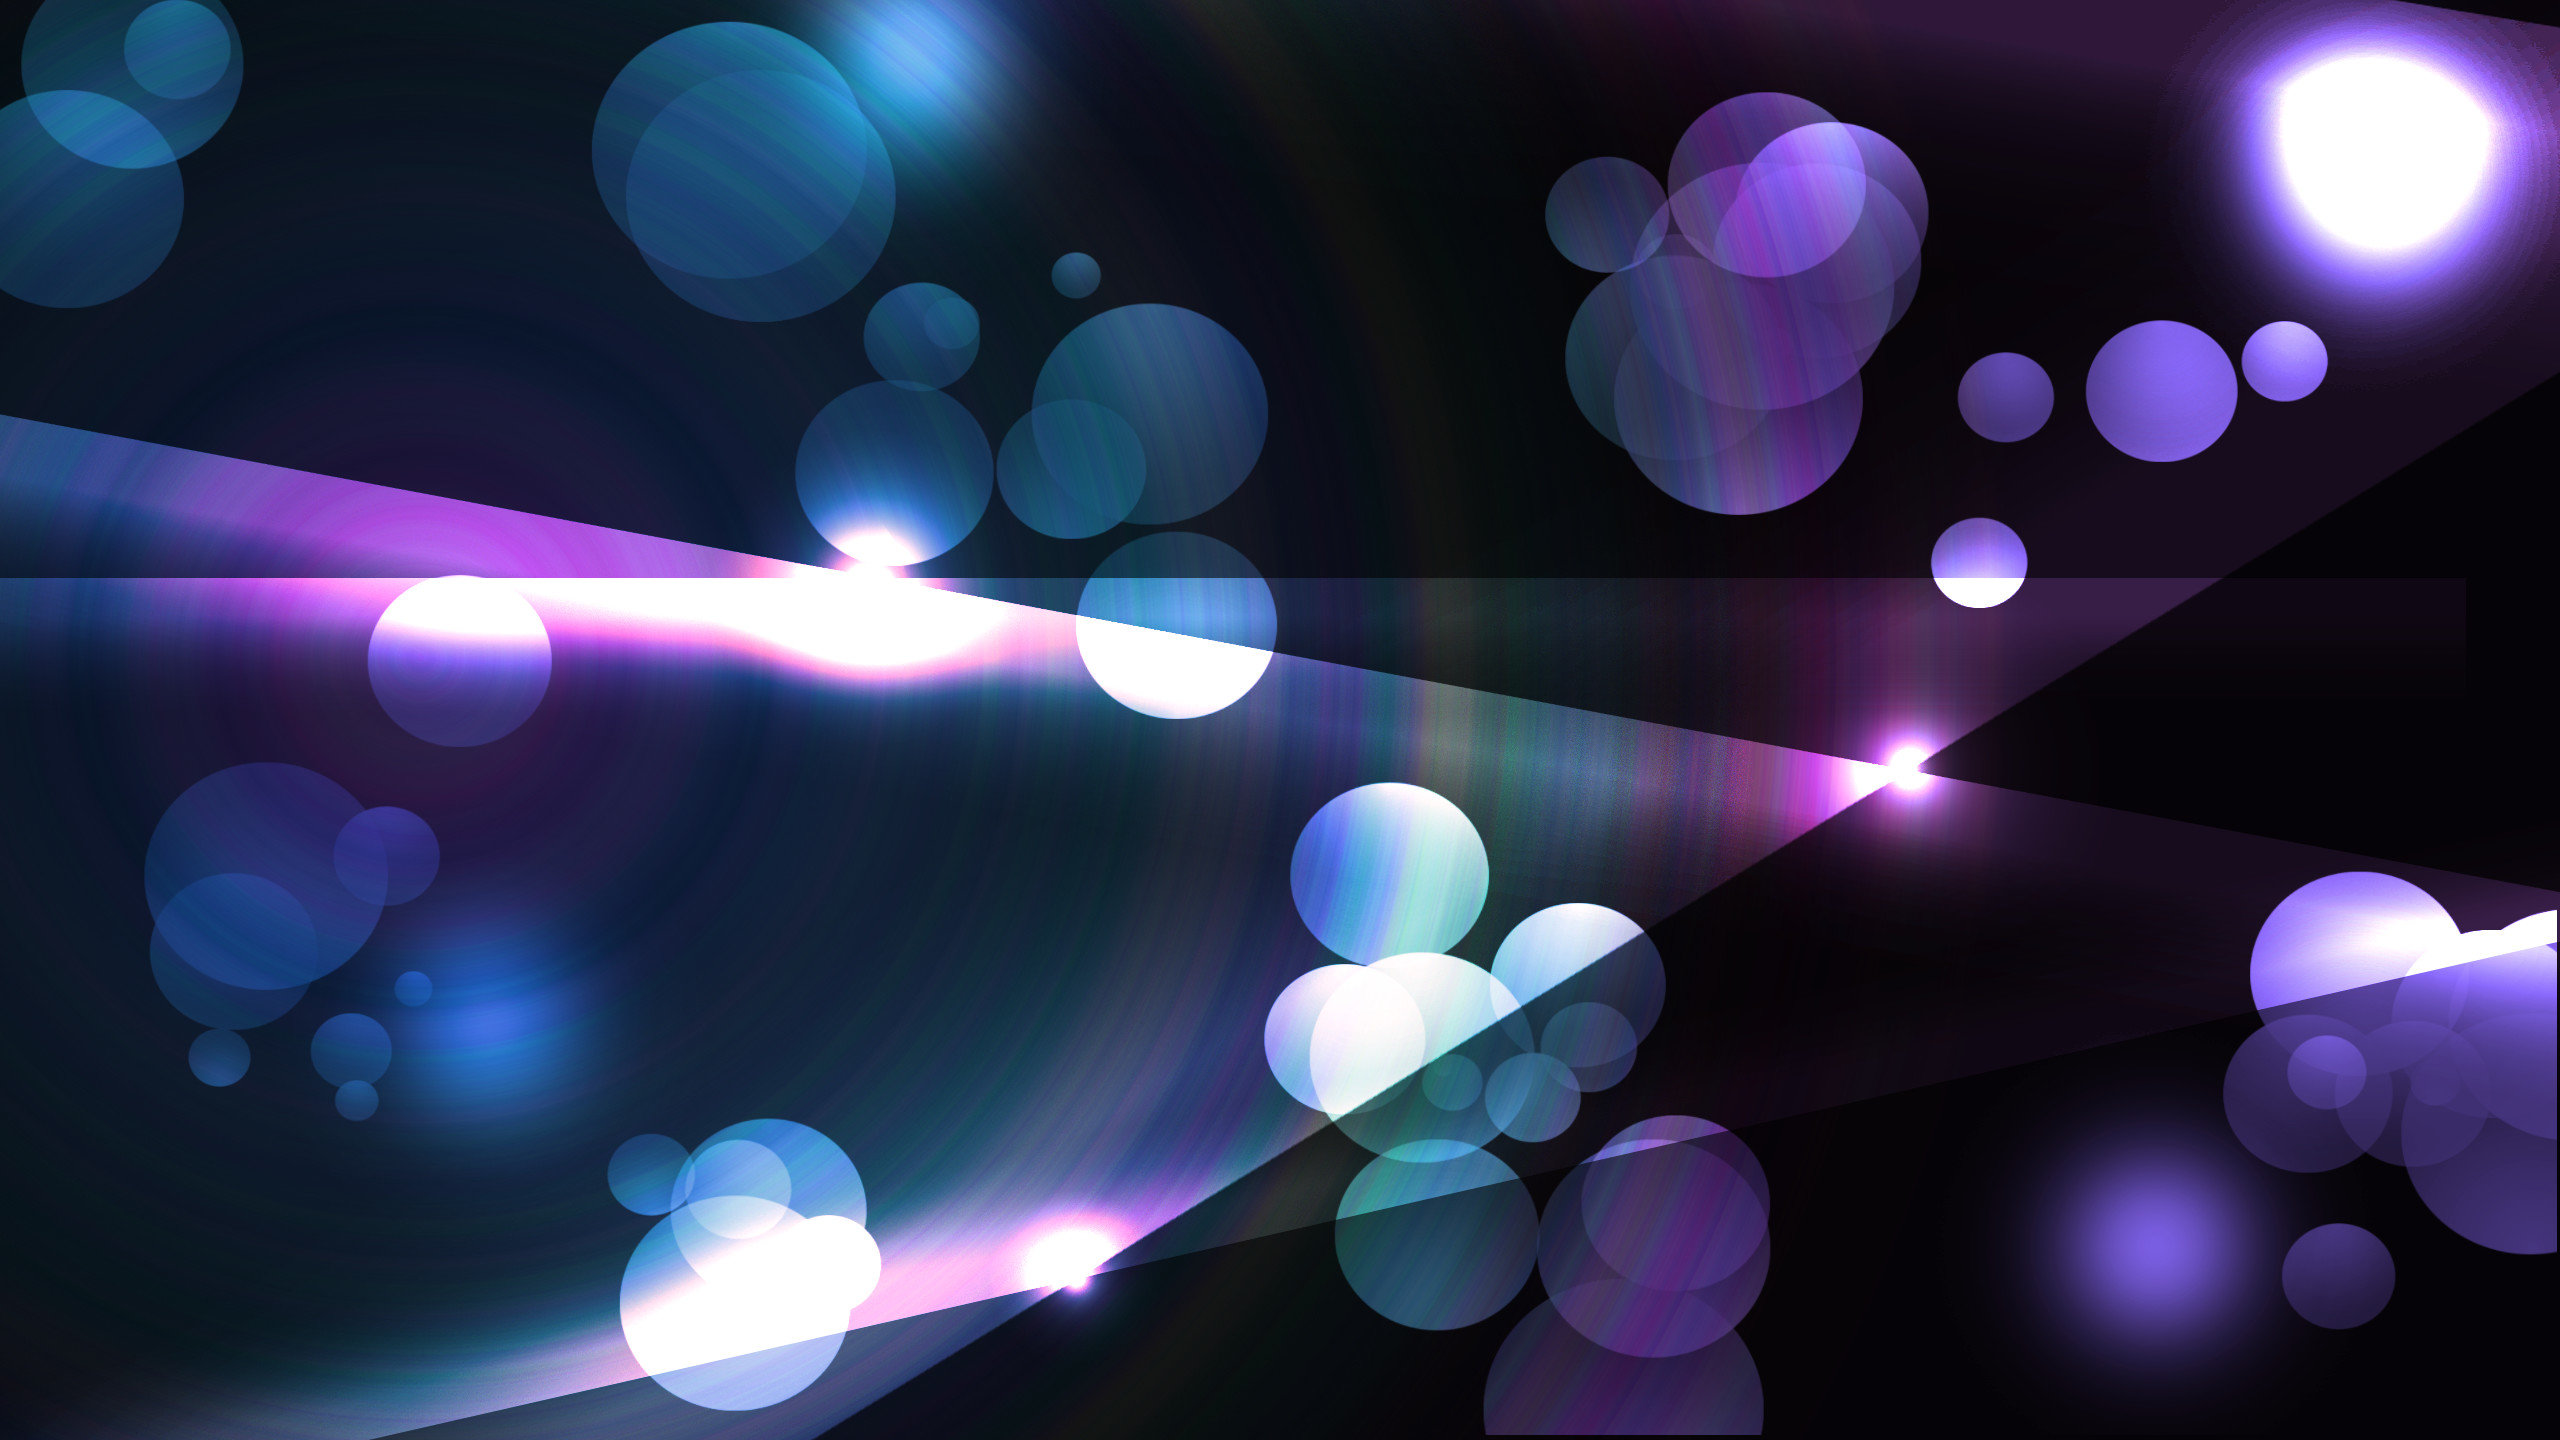 High resolution Light hd 2560x1440 background ID:47853 for desktop